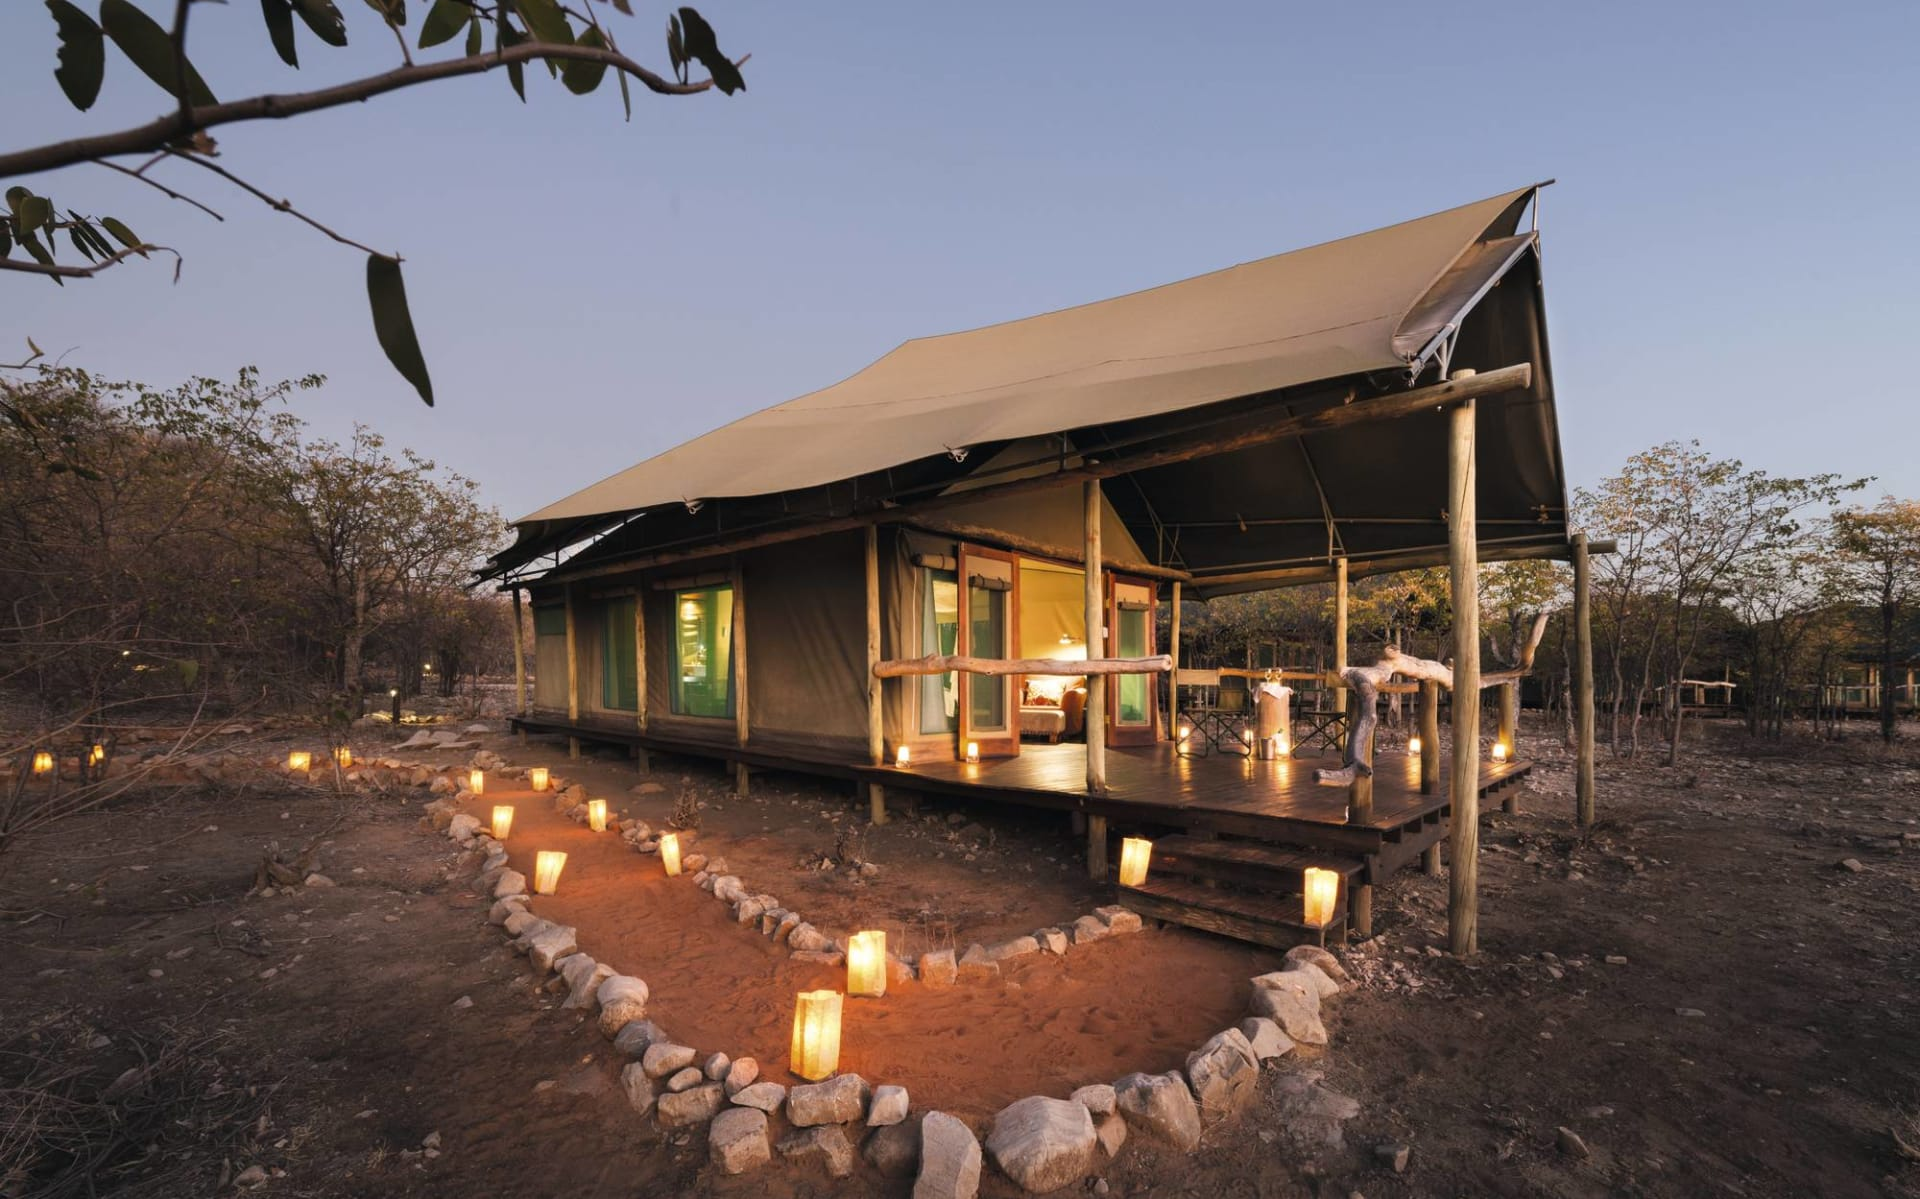 Ongava Tented Camp in Etosha Nationalpark: Ongava Tented Camp - zeltzimmer von Aussen